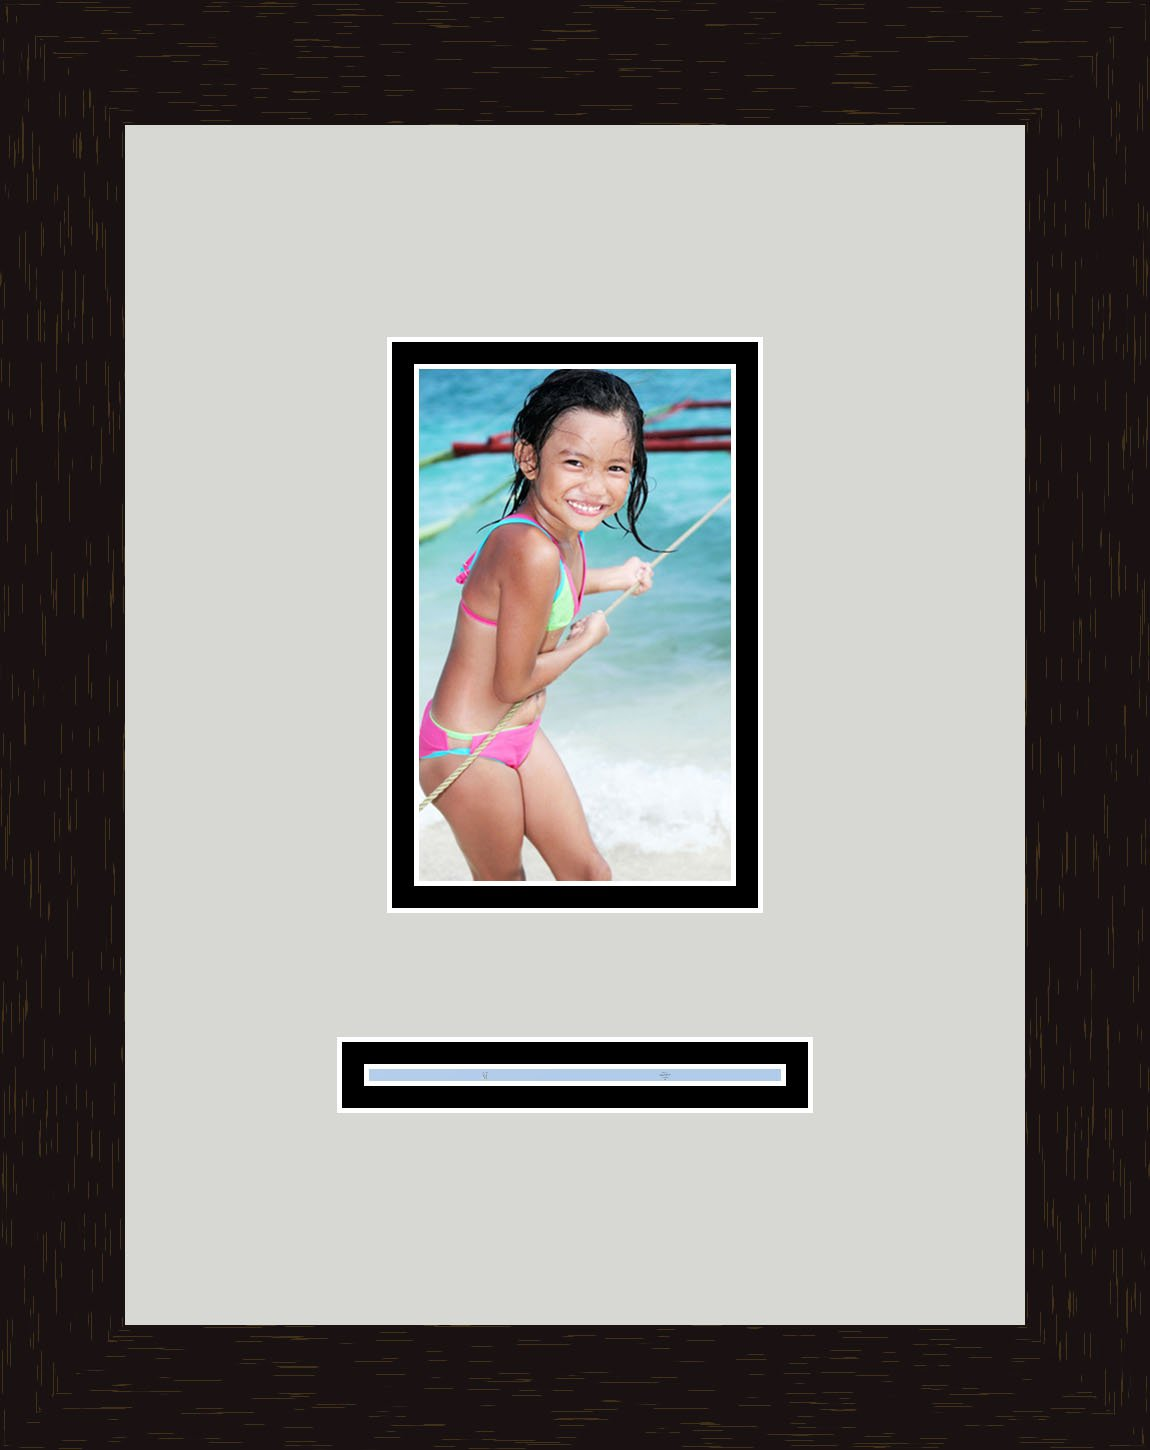 Art to Frames Double-Multimat-786-756//89-FRBW26061 Collage Frame Photo Mat Double Mat with 1-4x6 and 1-1x5 Openings and Espresso Frame